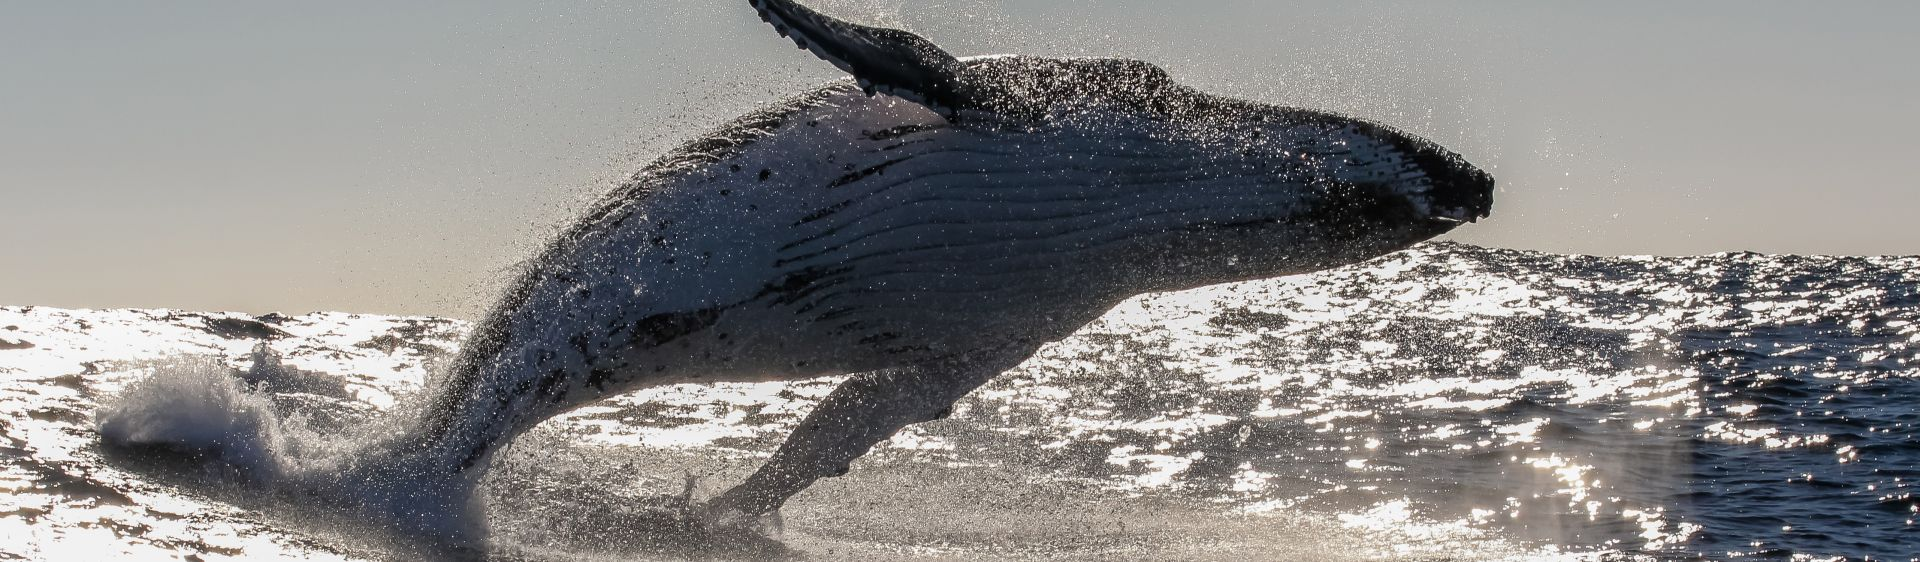 Humpback whale breaching off Coffs Harbour